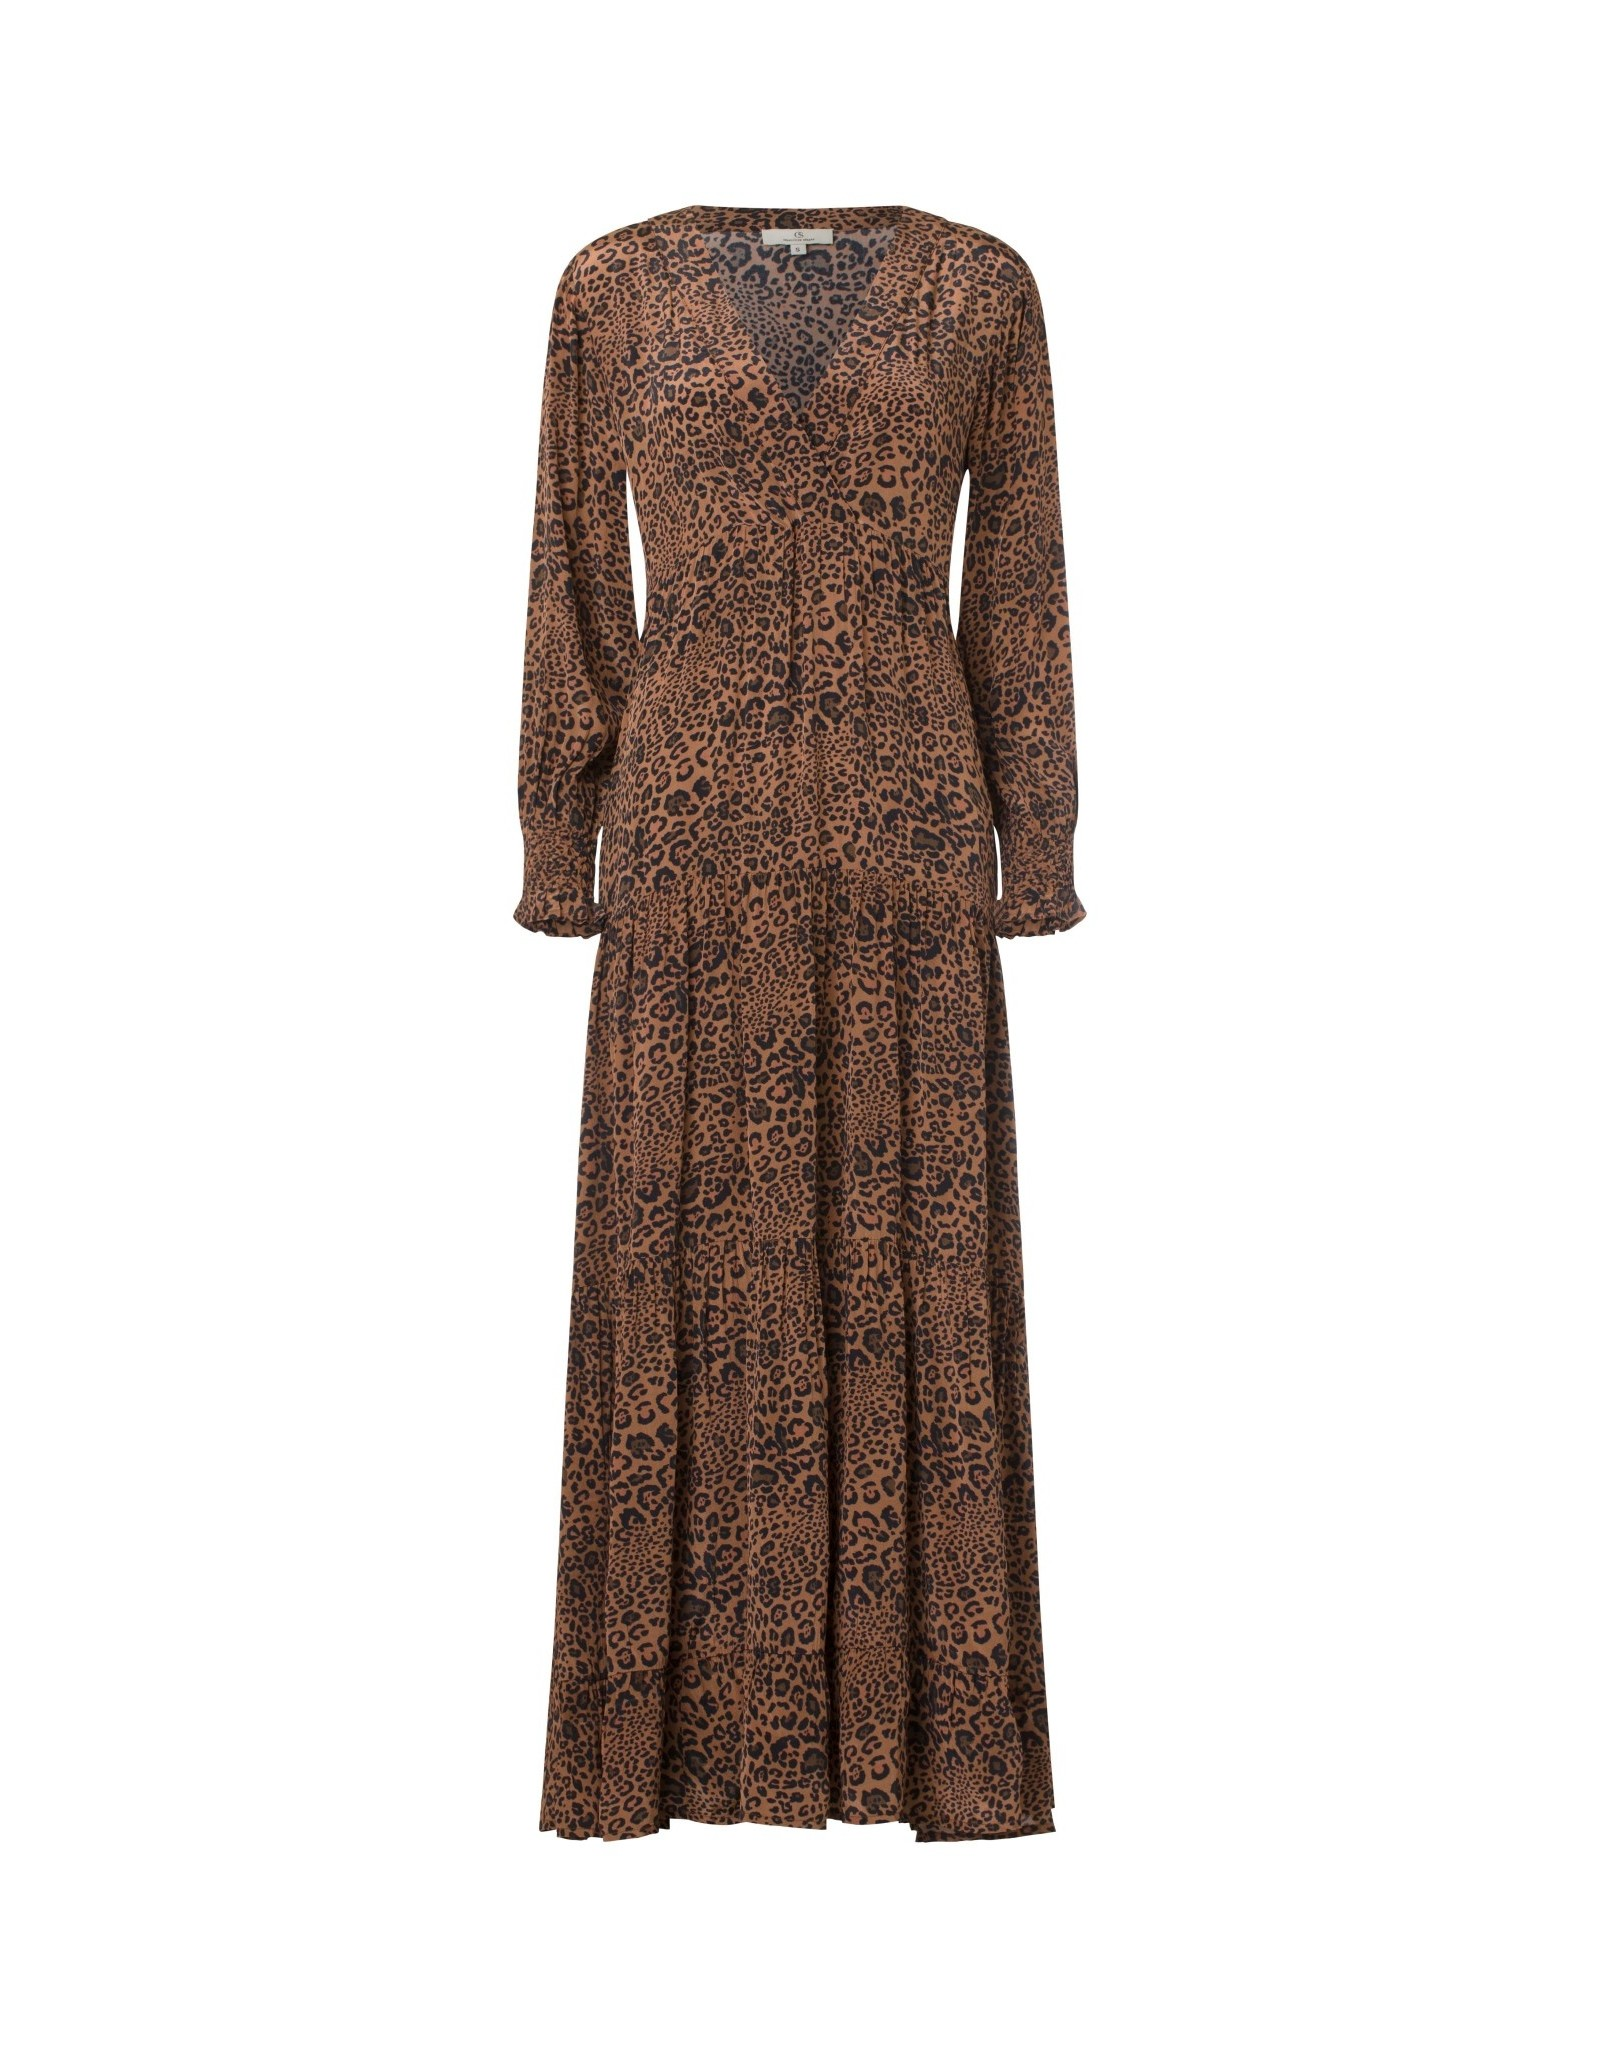 Charlotte Sparre Winter Layer Dress